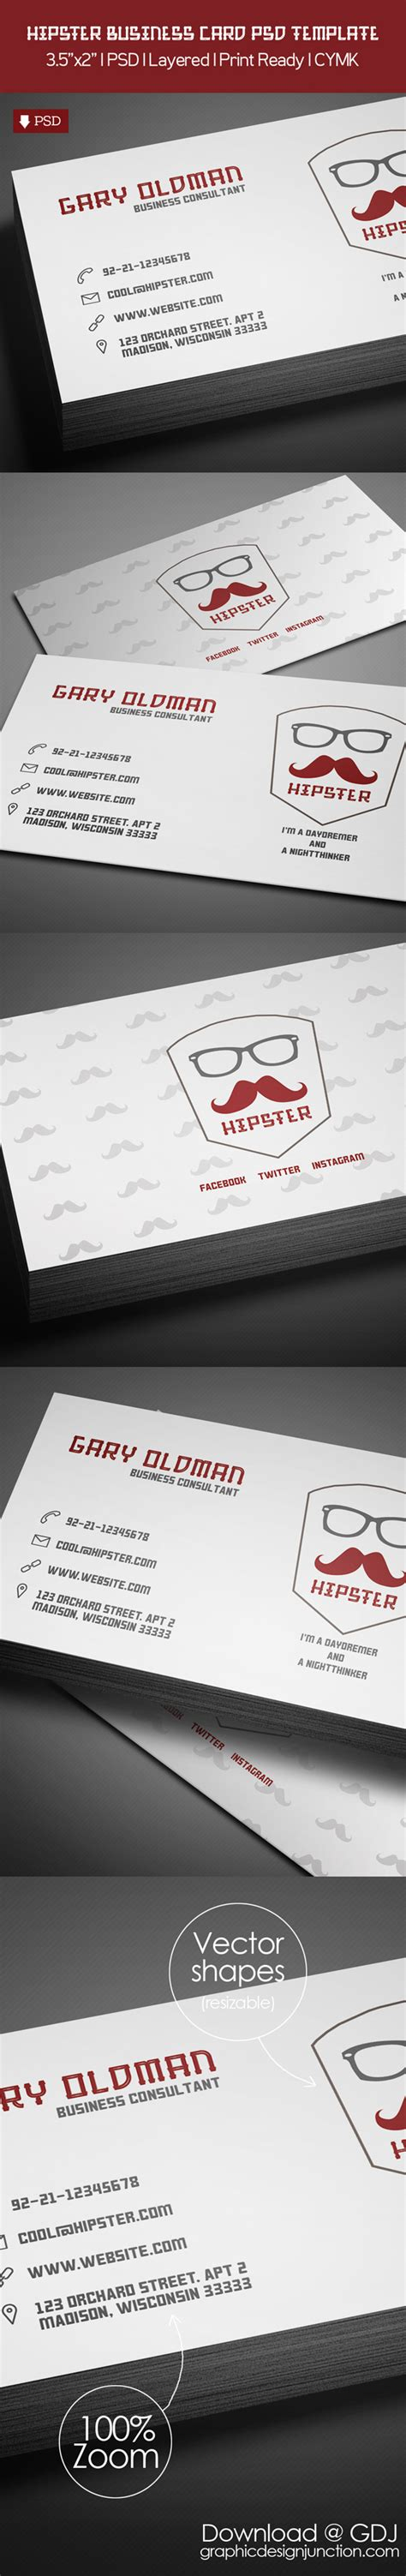 freebie business card psd template freebies